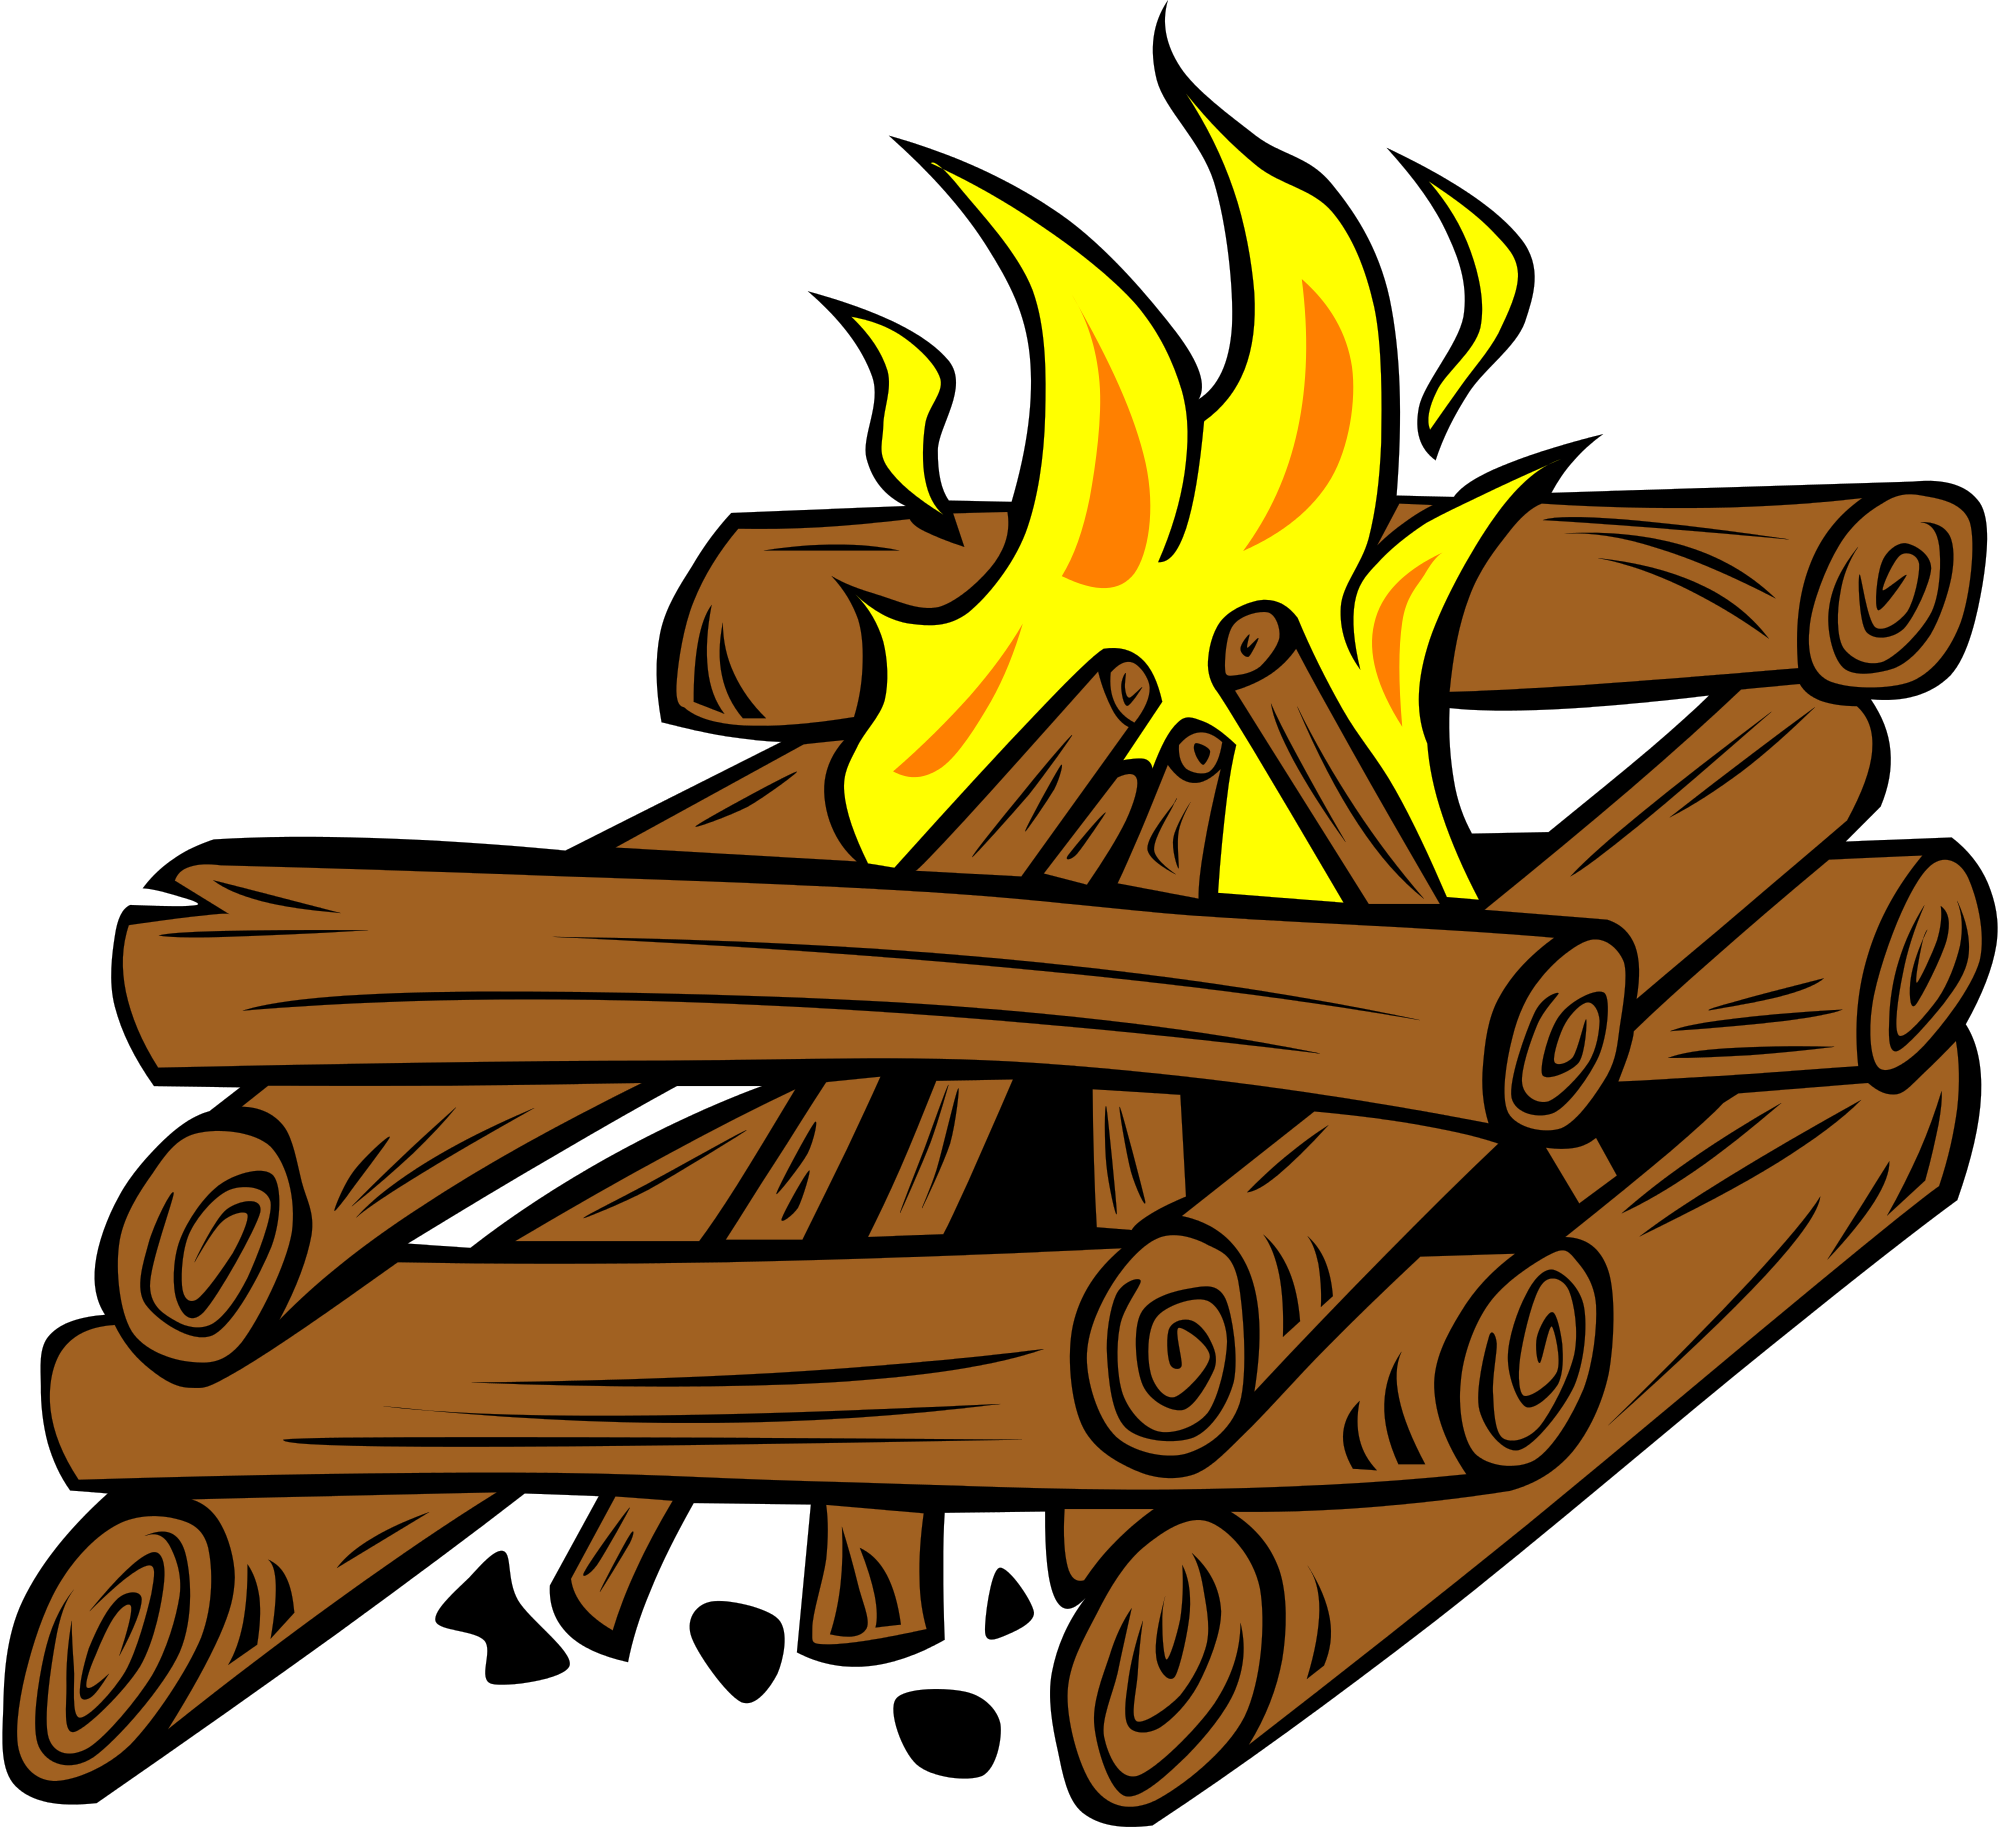 Free picture download clip. Outdoors clipart camp fire flame graphic royalty free stock